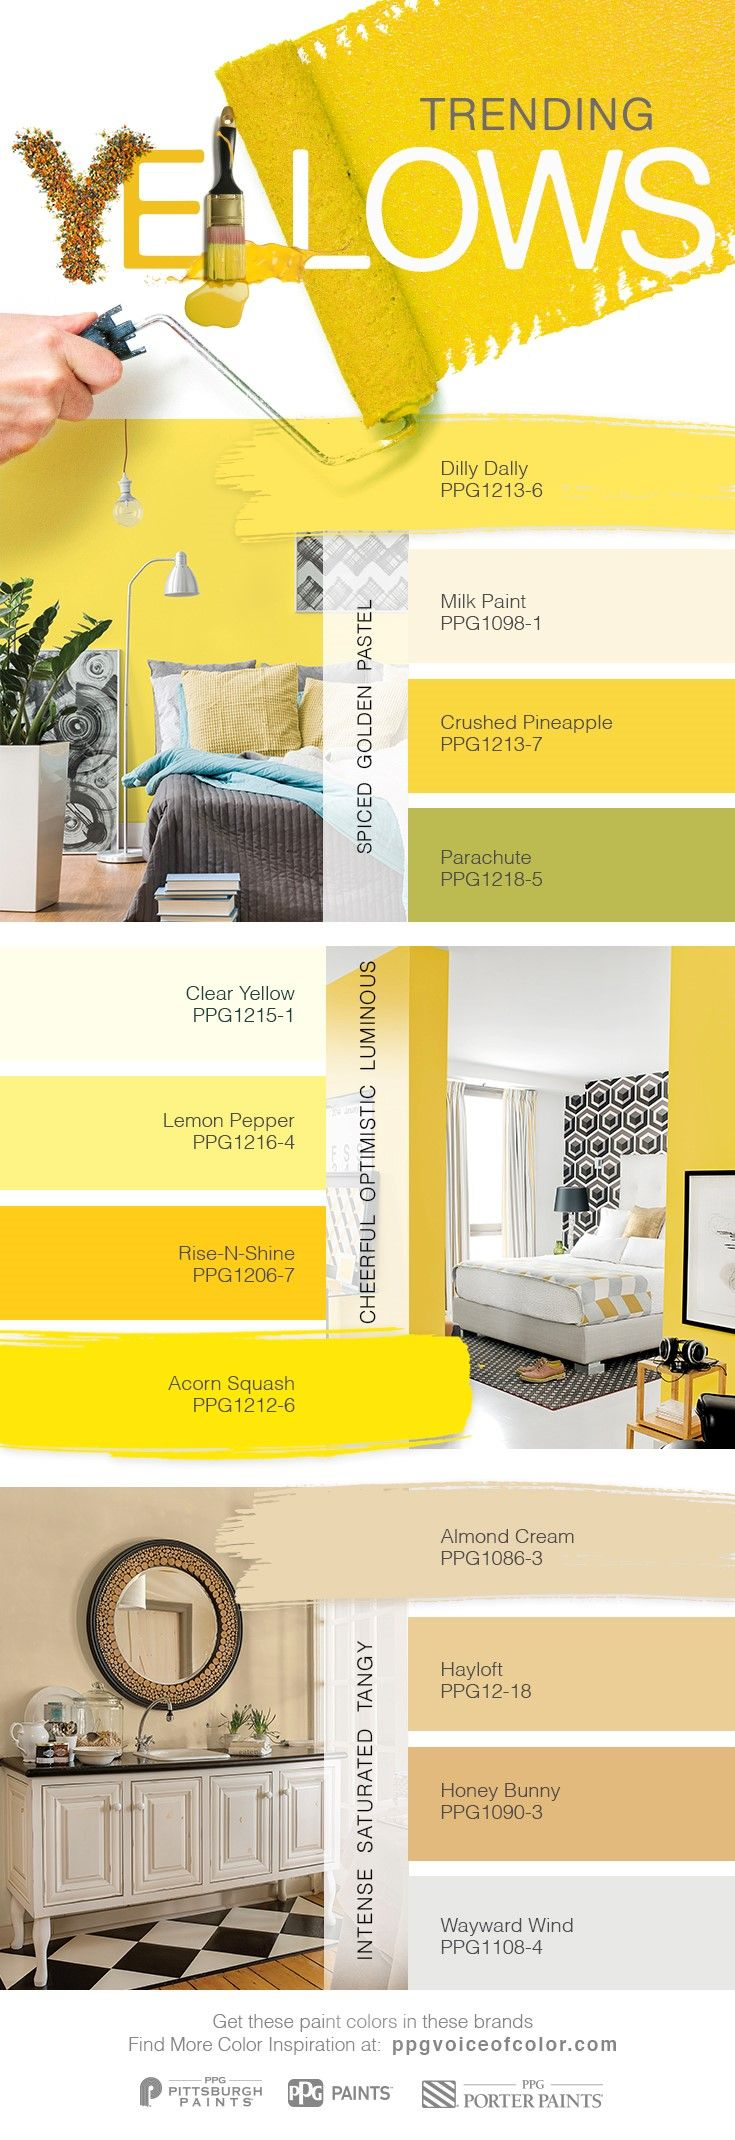 trending yellow paint colors for 2017 yellow is a happy warm color that can enliven a room or. Black Bedroom Furniture Sets. Home Design Ideas